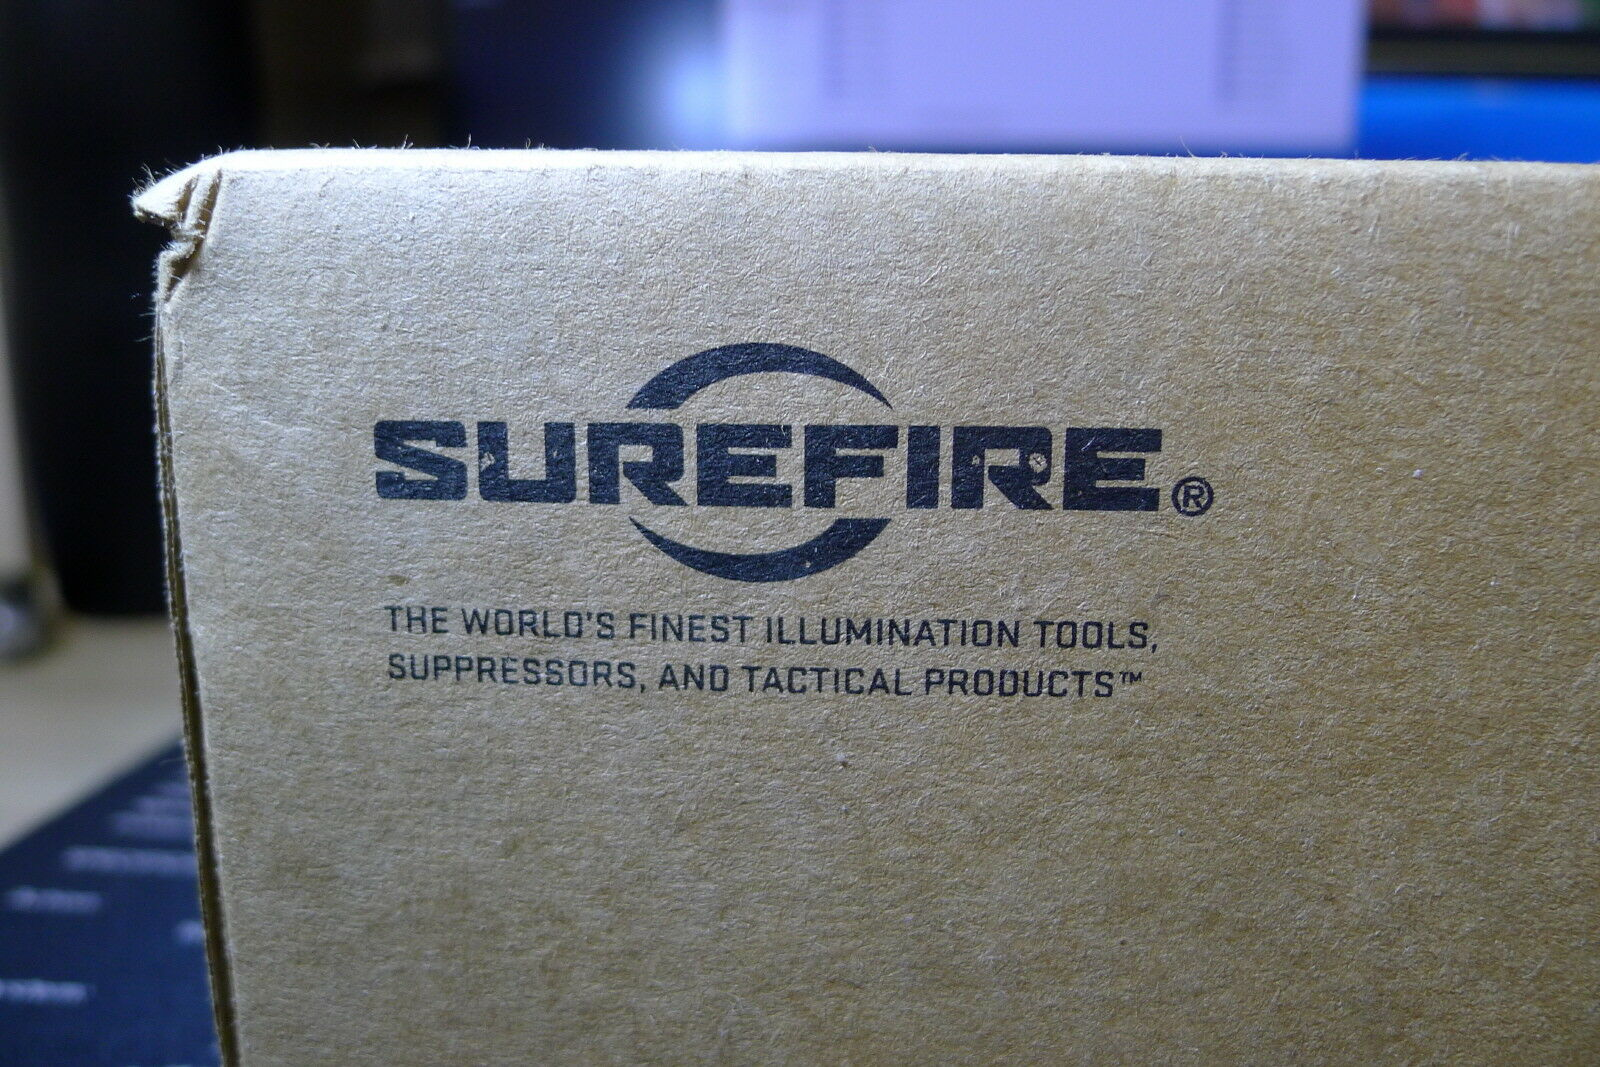 Worldwideshipping Surefire M600IB Scout Light with Z68 tailcap